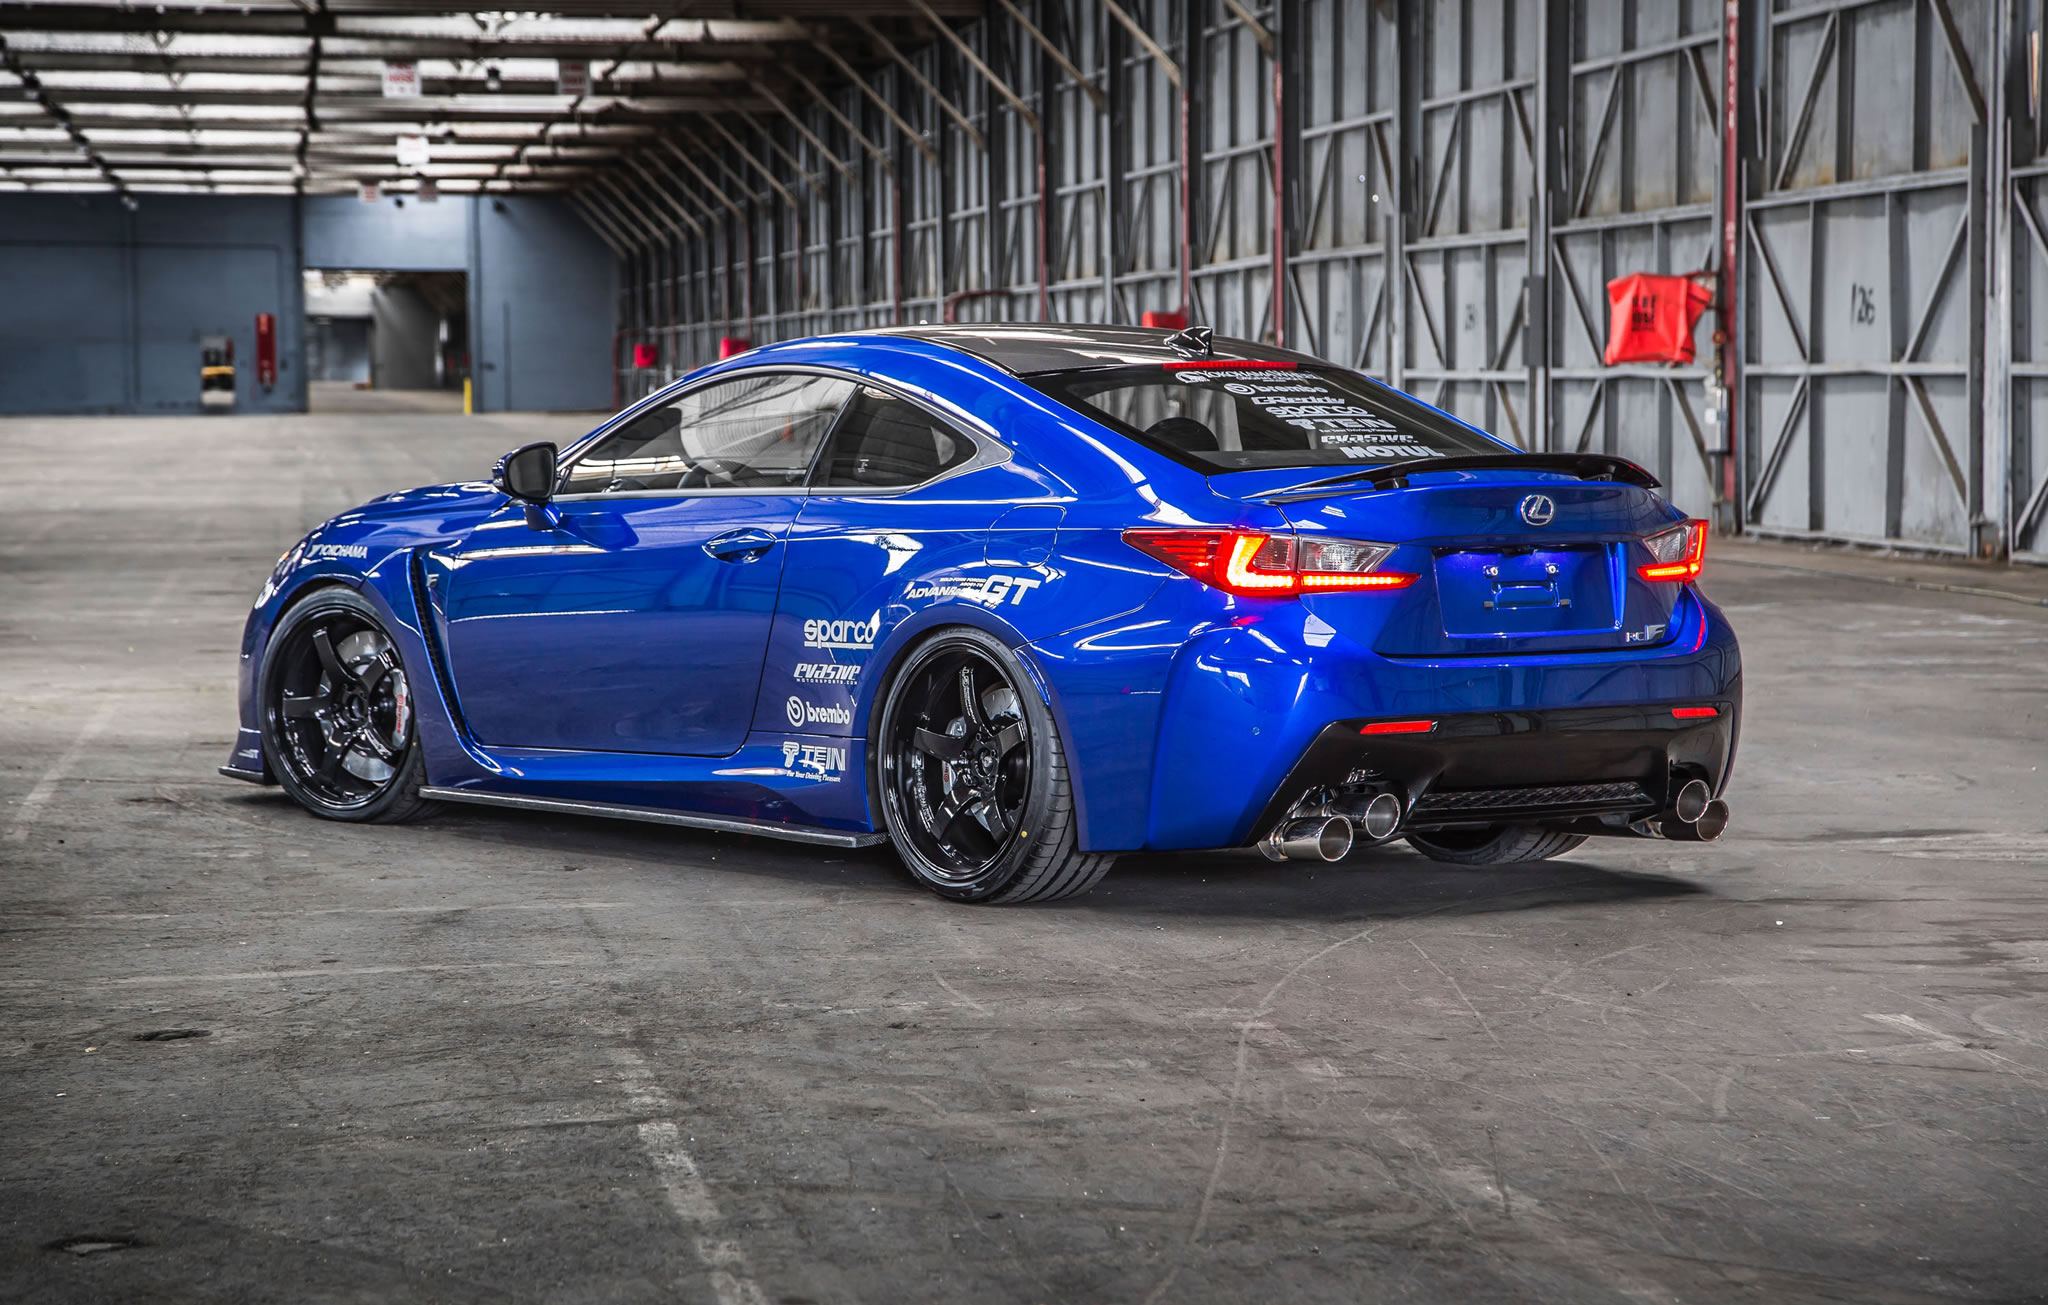 2015 lexus rc f by gordon ting rear photo size 2048 x 1305 nr 9 26. Black Bedroom Furniture Sets. Home Design Ideas